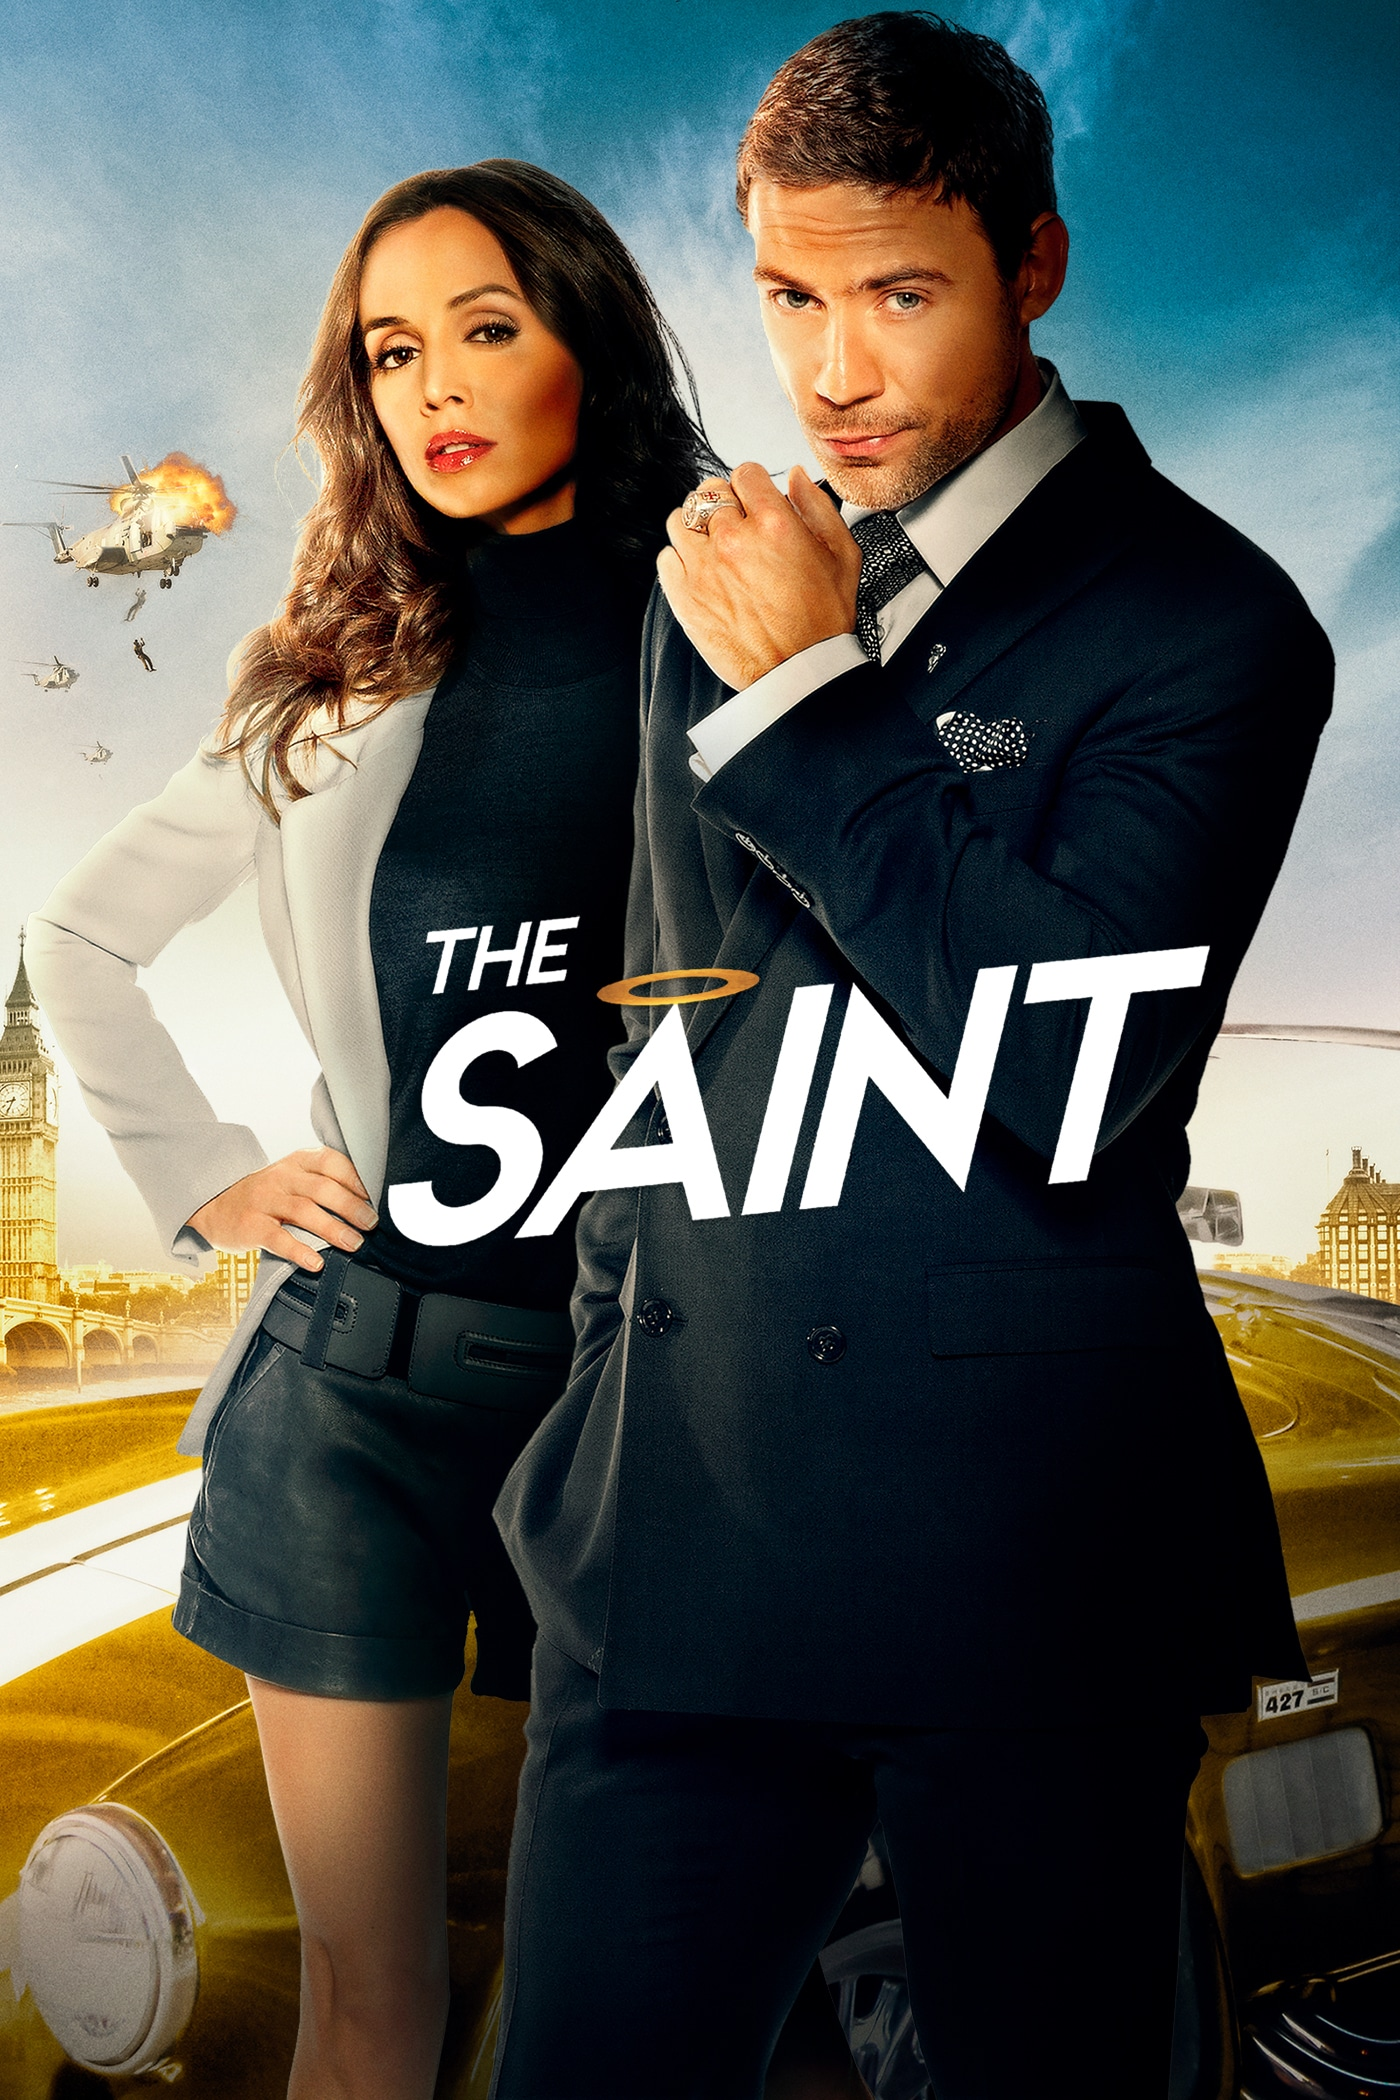 The Saint movie poster